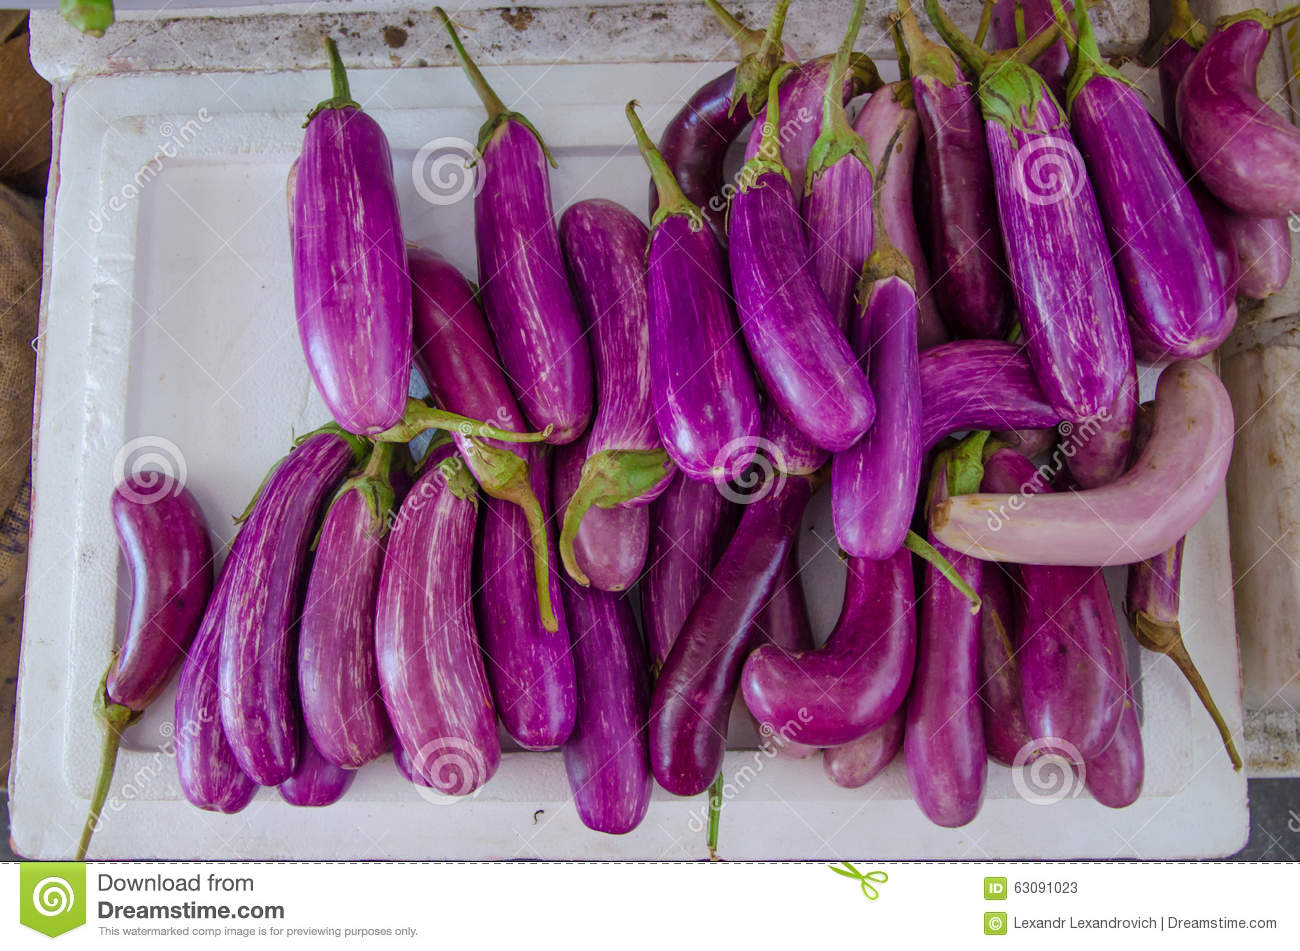 Download Abondance des aubergines image stock. Image du groupe - 63091023